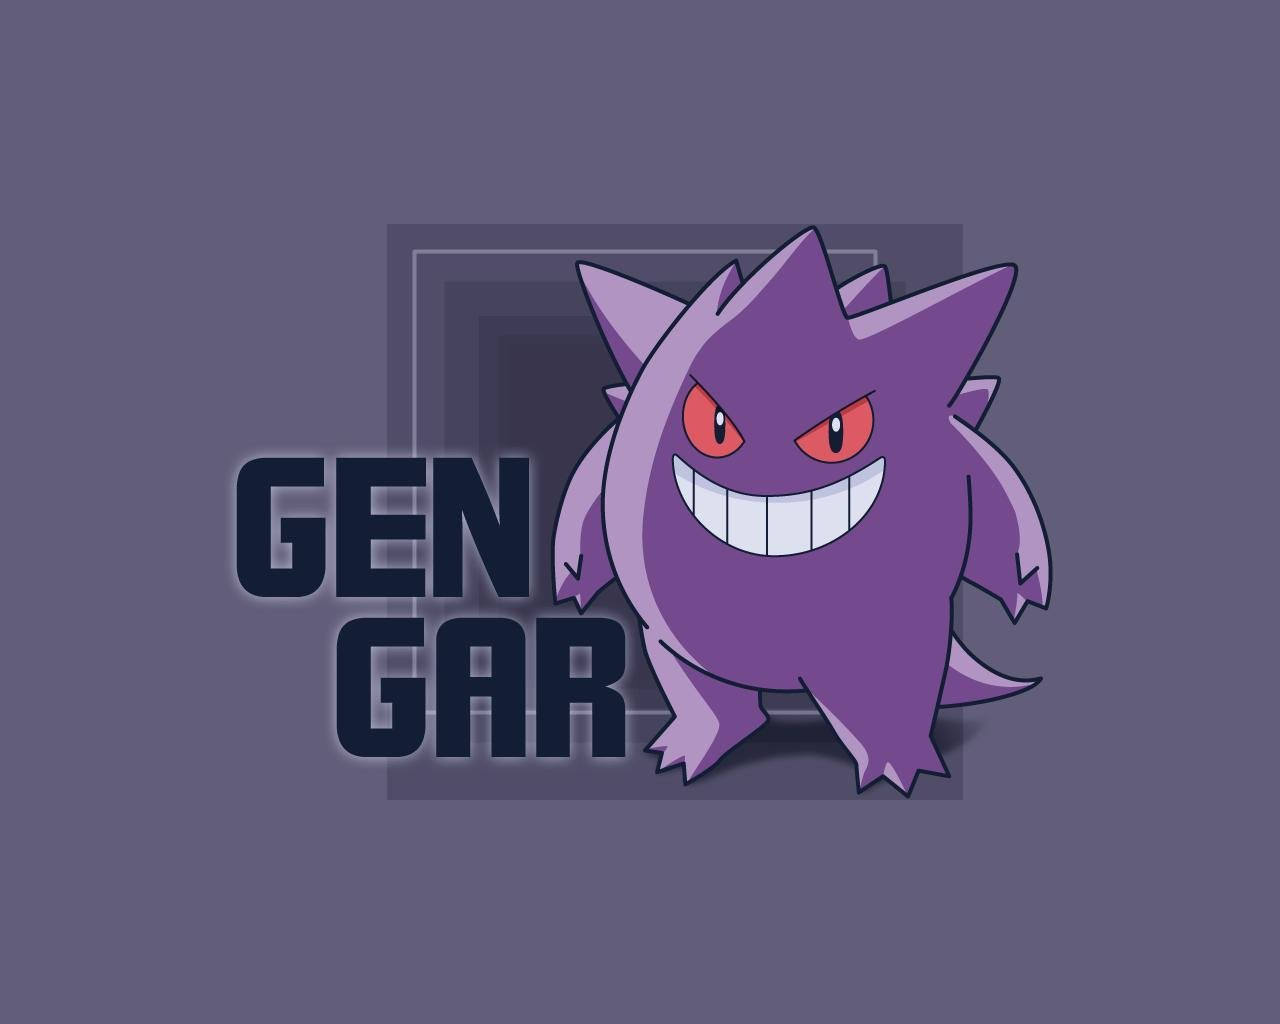 Pokemon Gengar Wallpaper 1280x1024 Pokemon Gengar 1280x1024